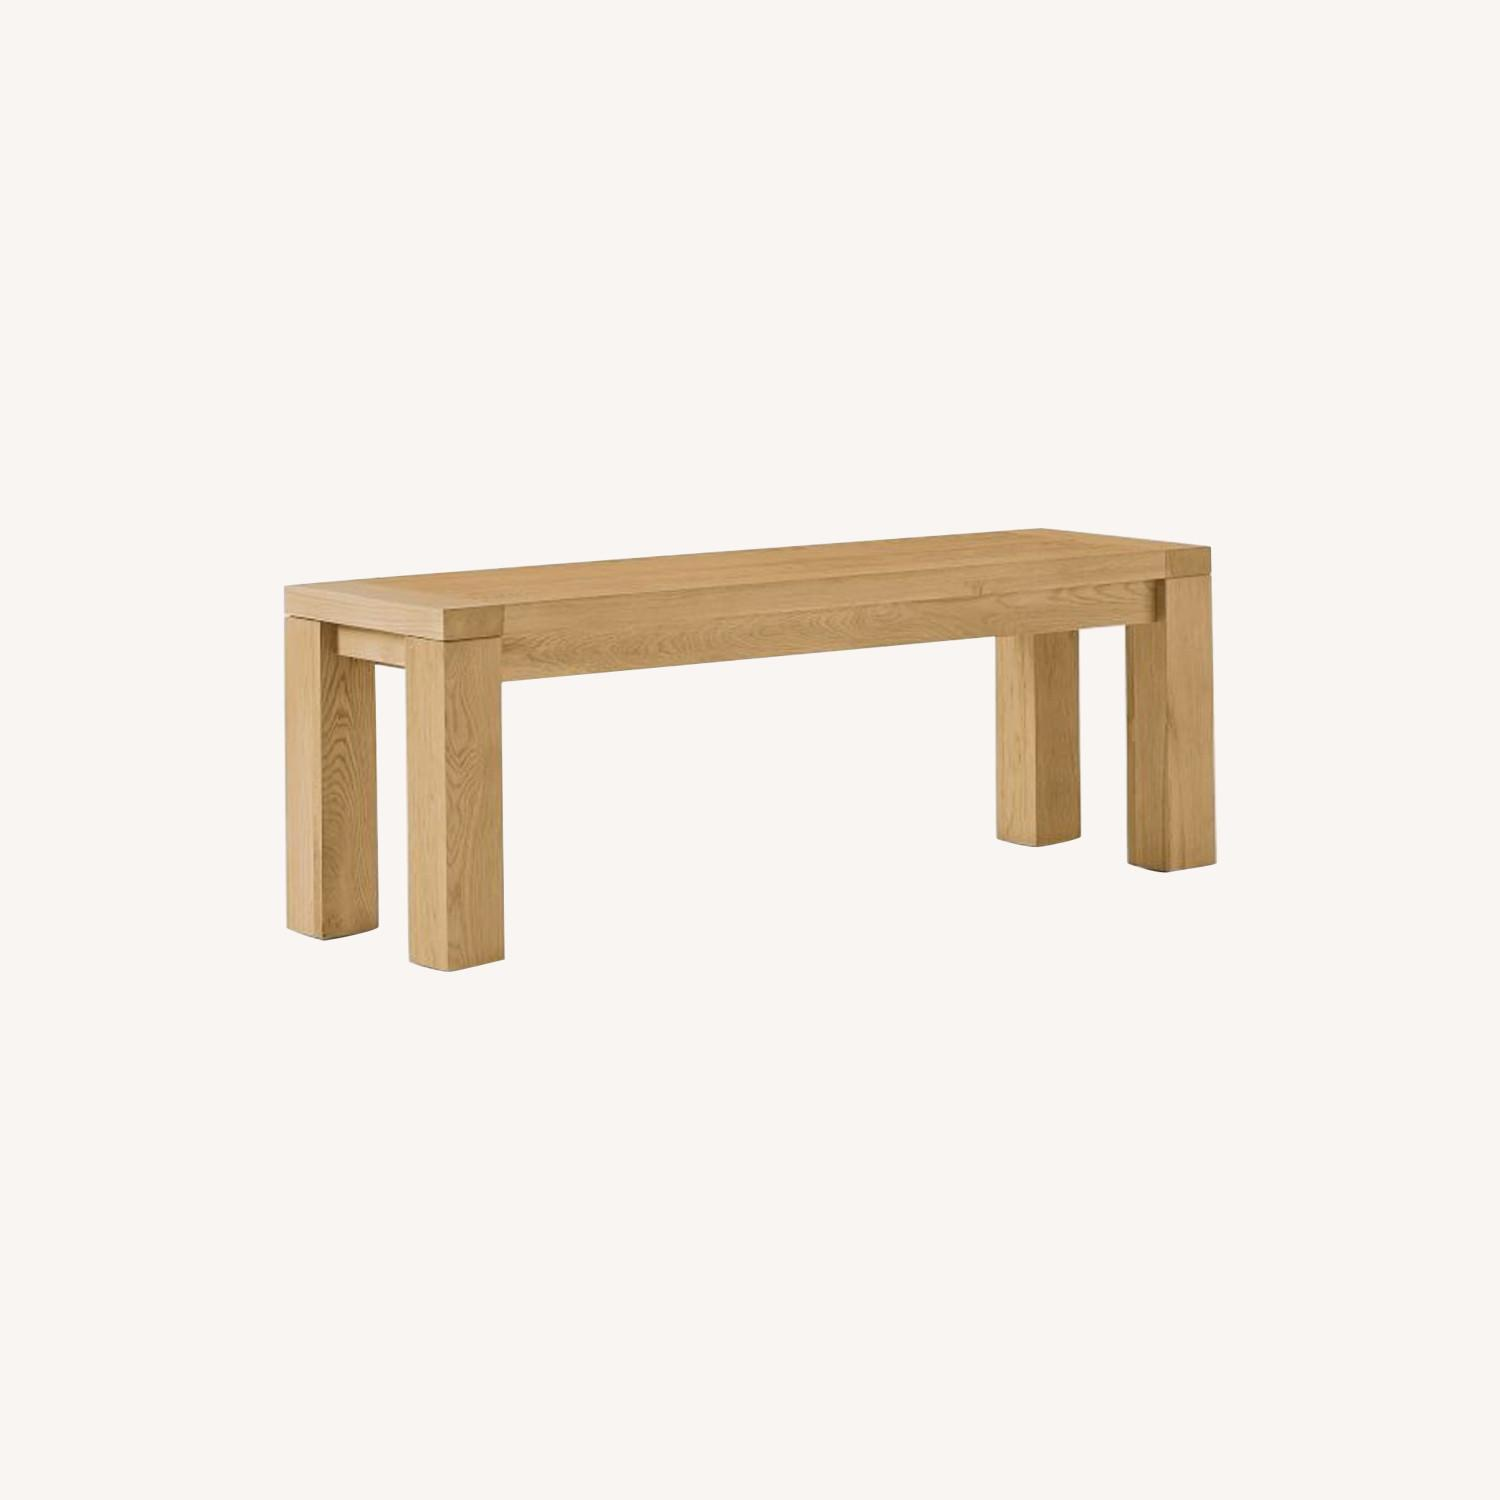 West Elm Tahoe Solid Wood Dining Bench - image-0